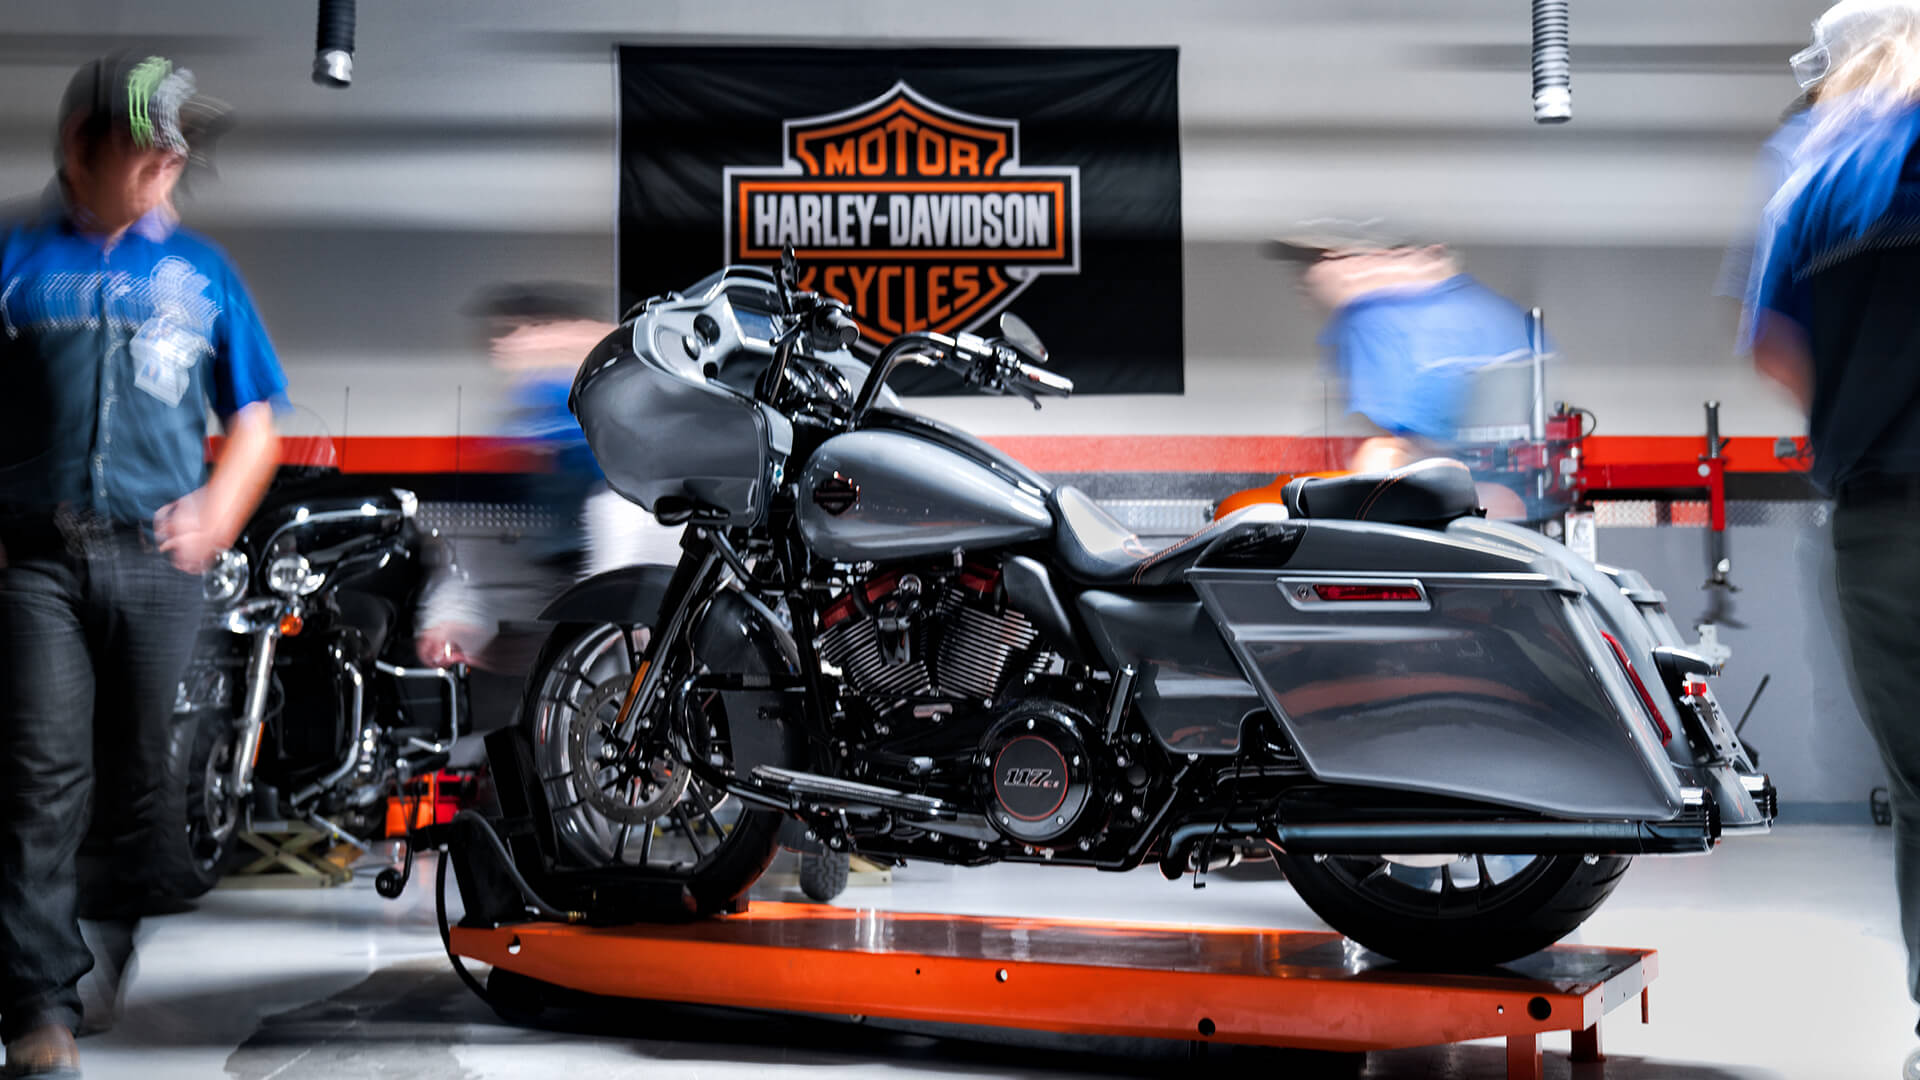 Harley Davidson being repaired at MMI